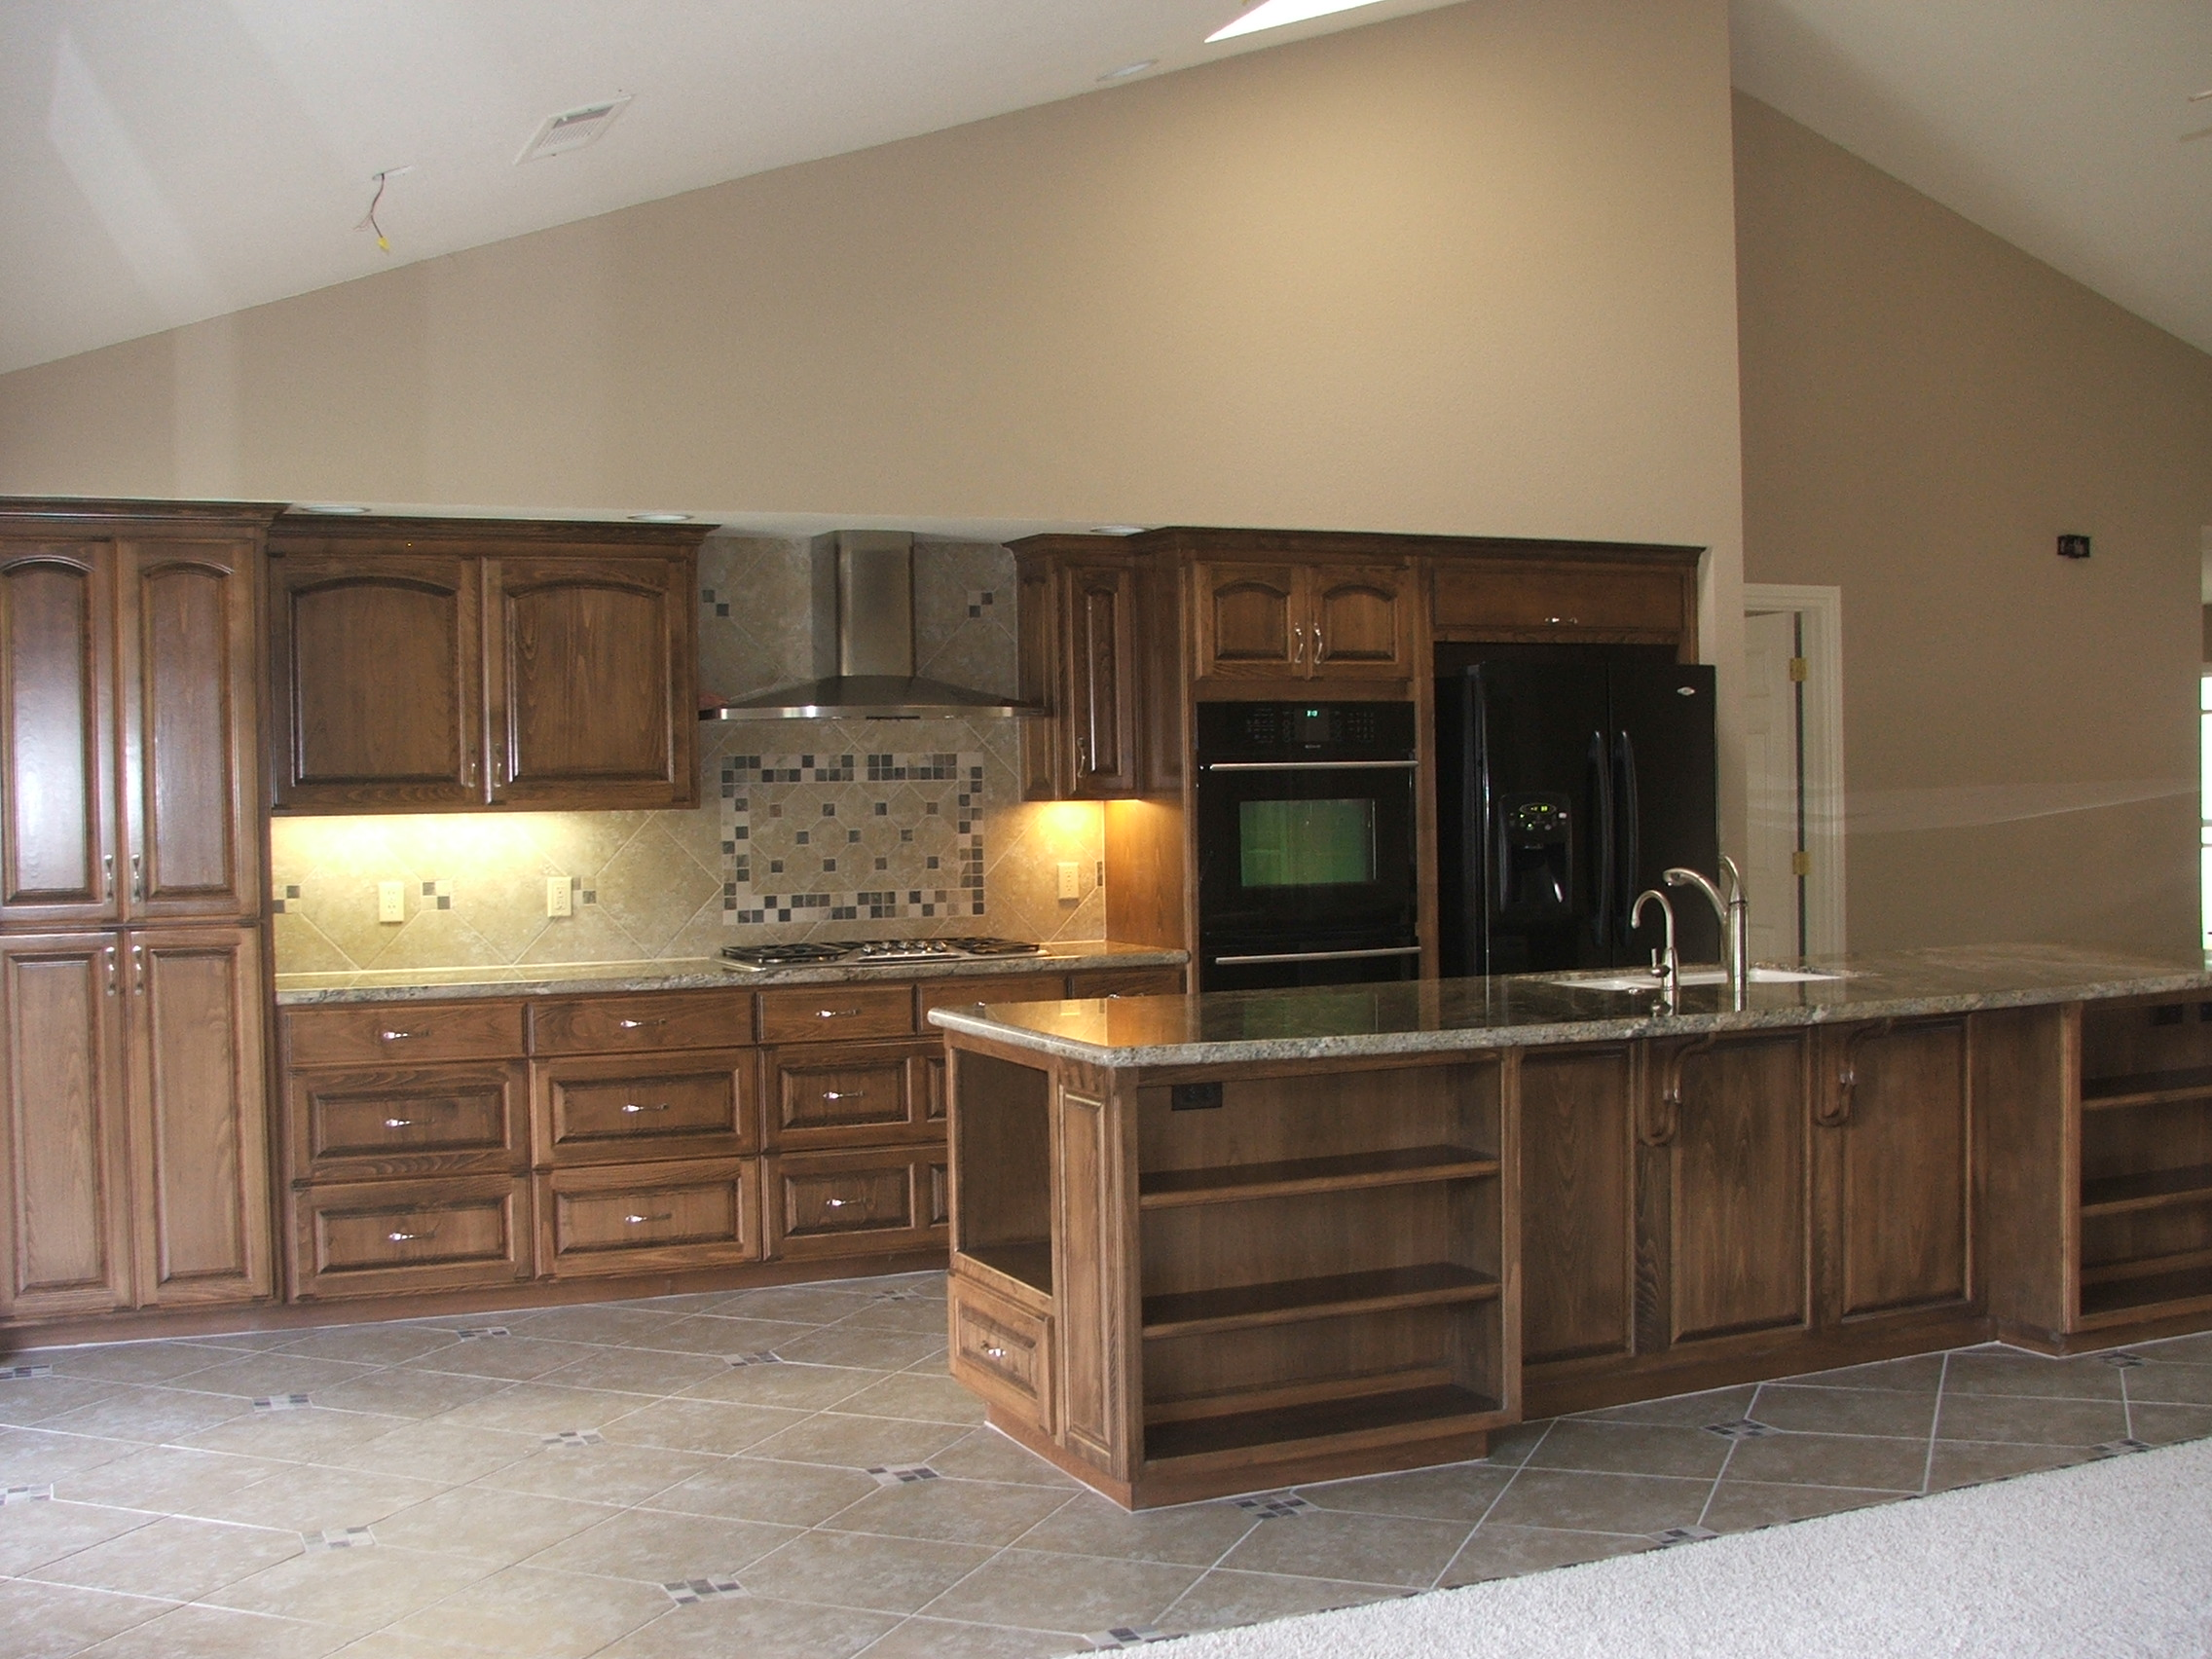 Lemoore, CA Construction - Home Improvement